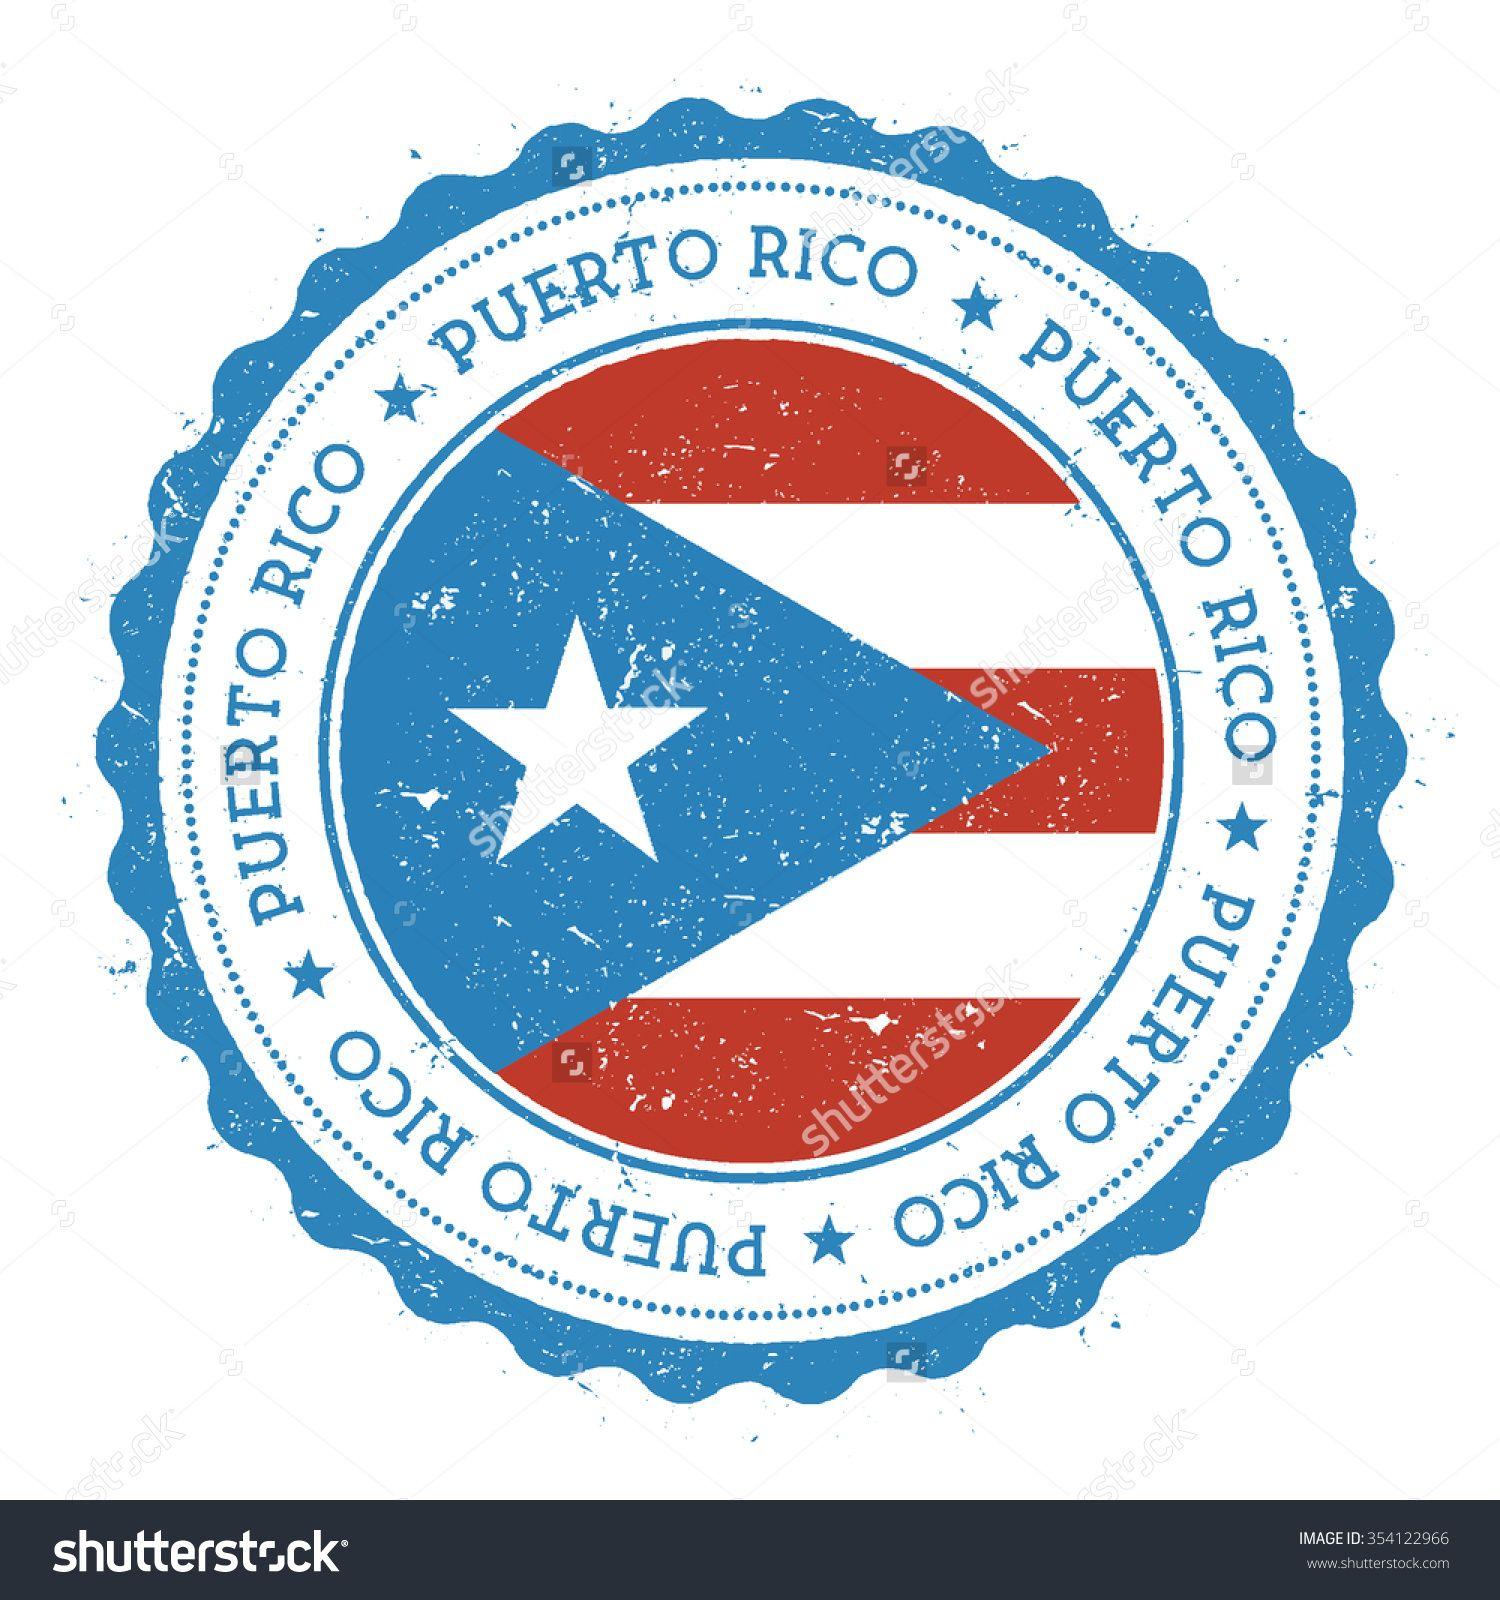 Puerto rico passport stamp google search learn pinterest puerto rico passport stamp google search biocorpaavc Images